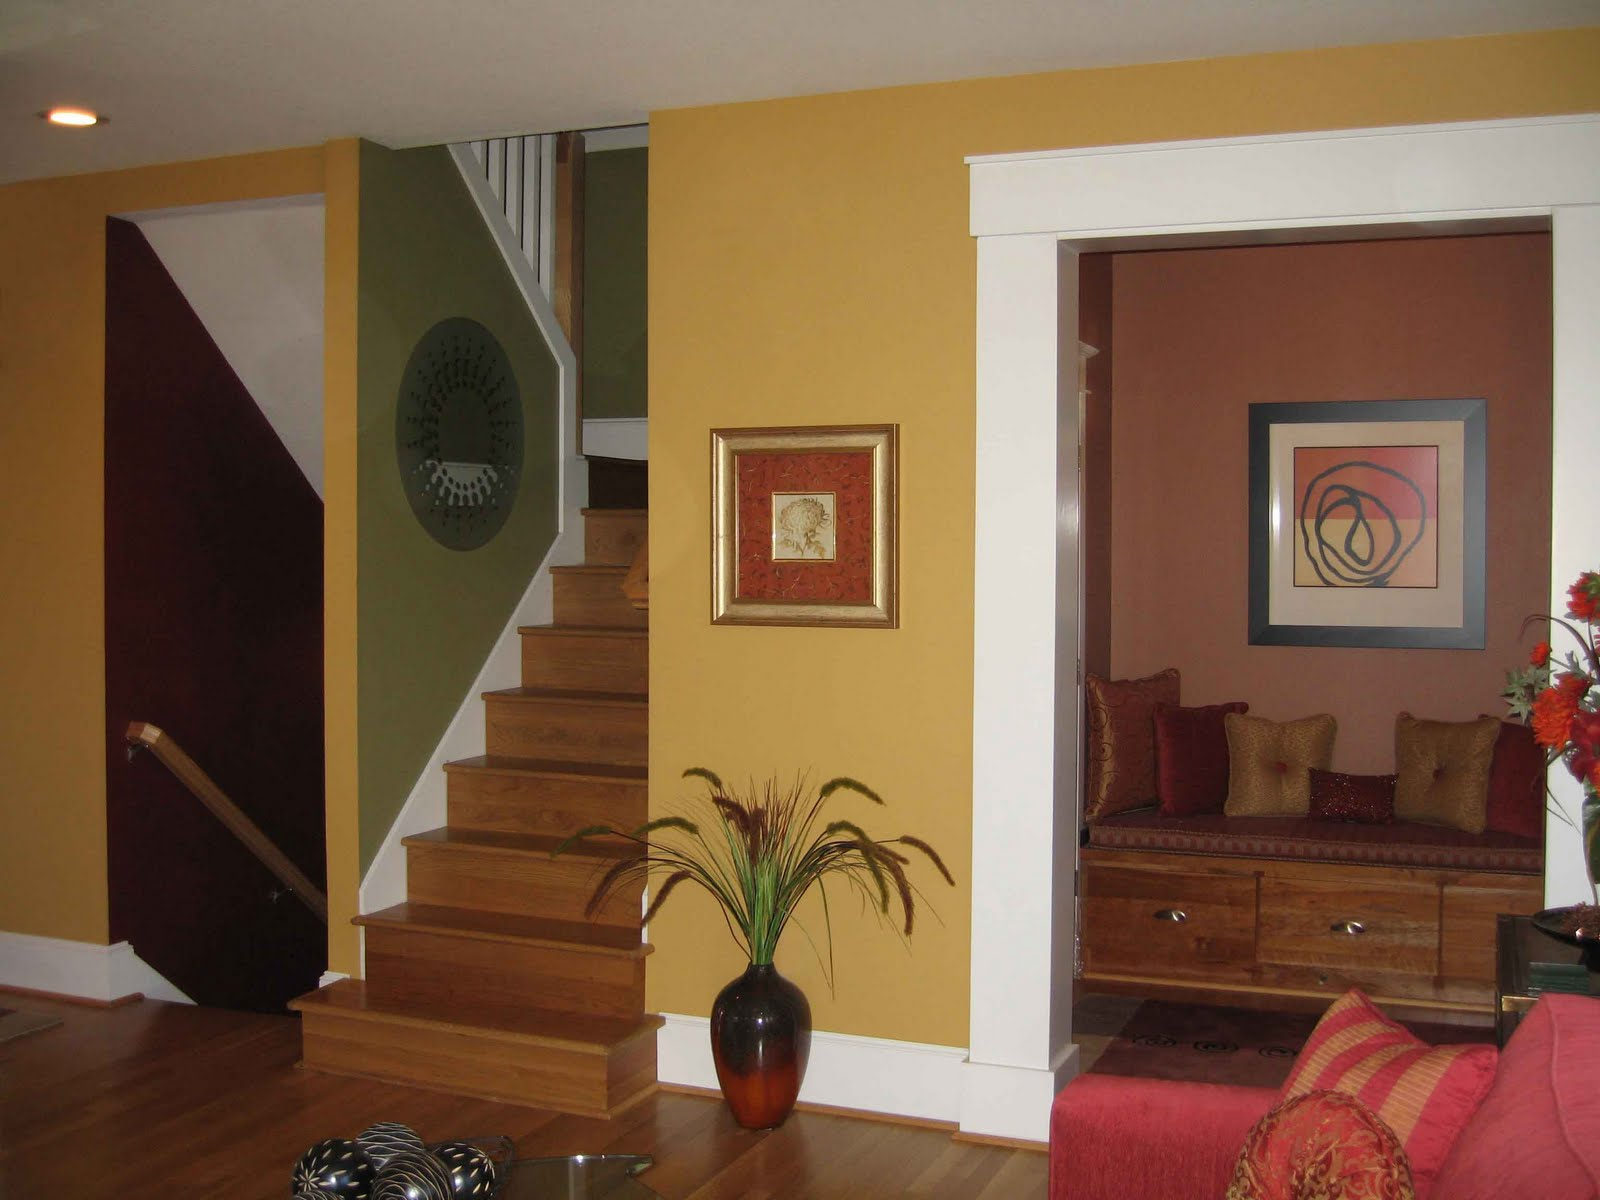 Interior spaces interior paint color specialist in Home interior color schemes